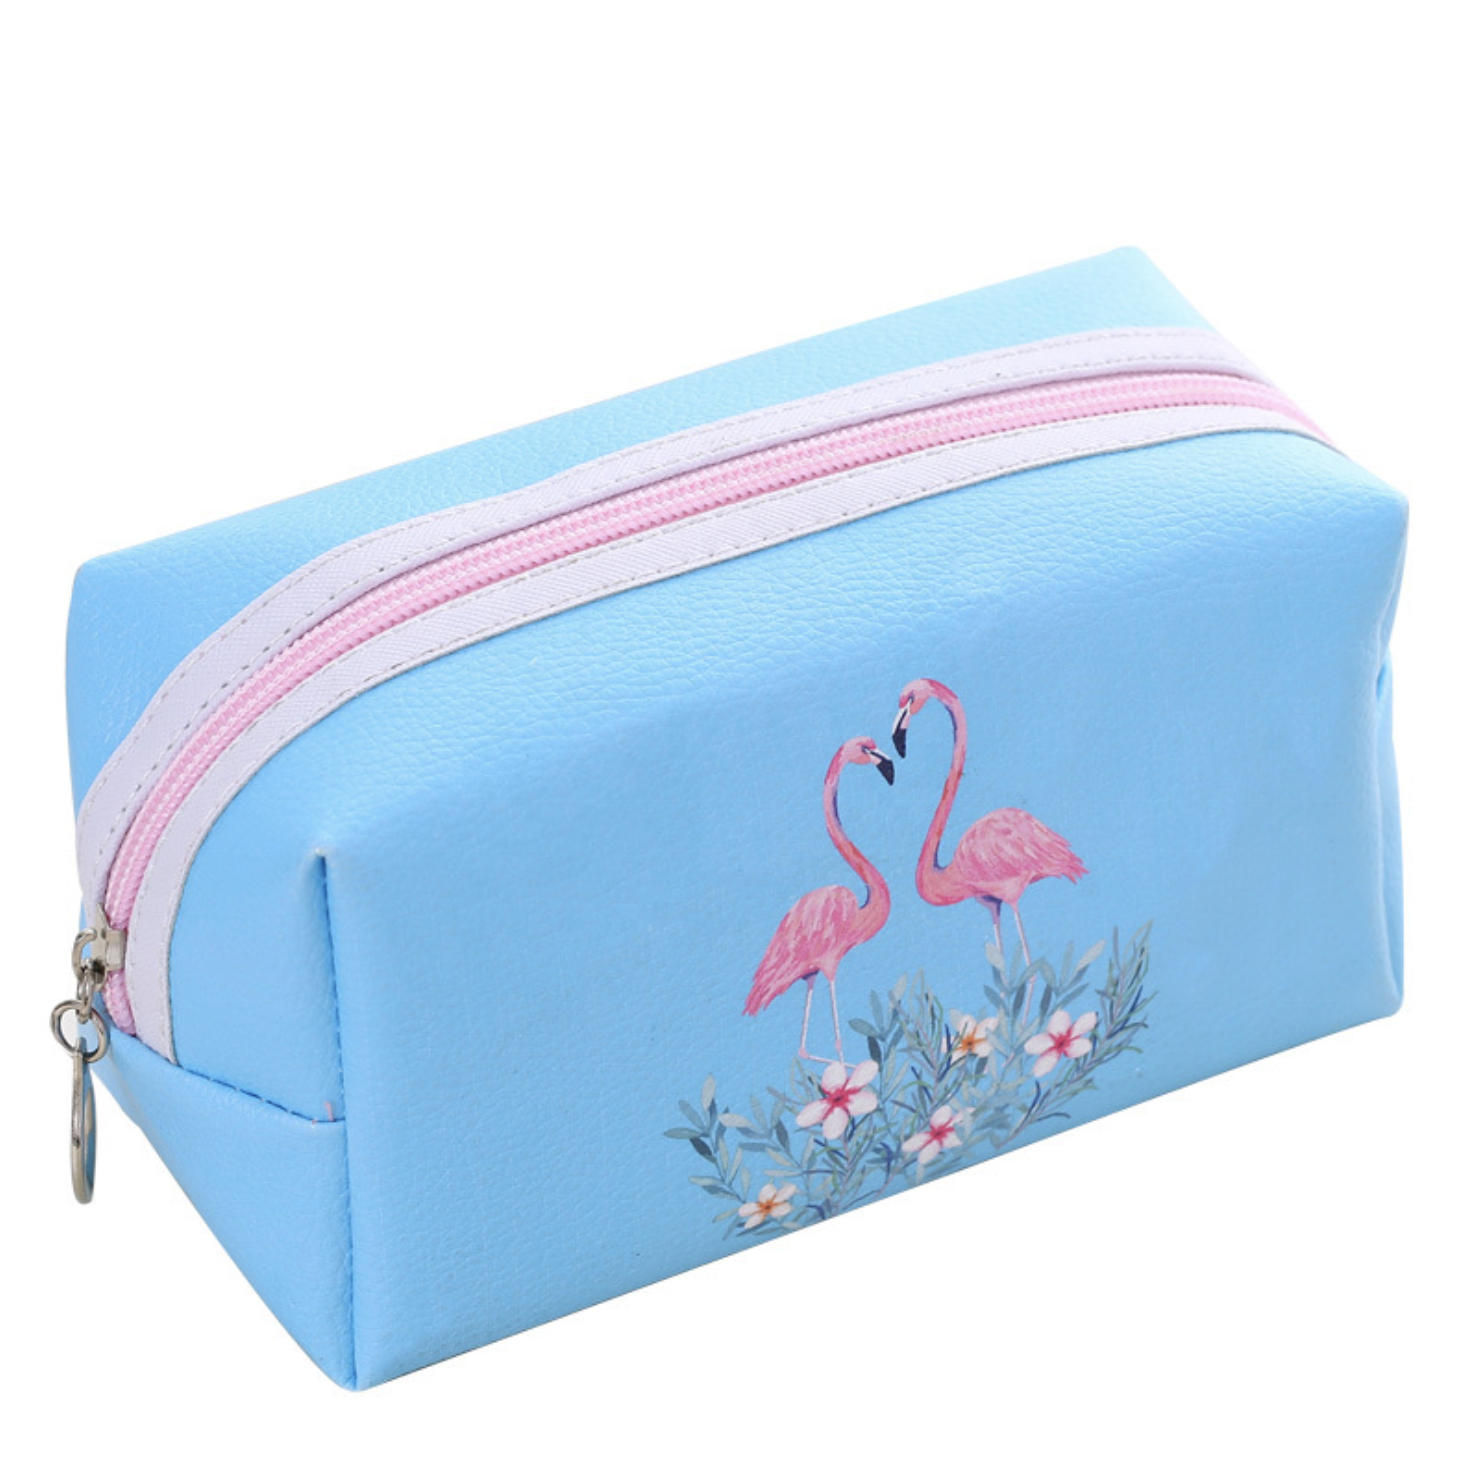 waterproof travel padded cosmetic bag with zipper